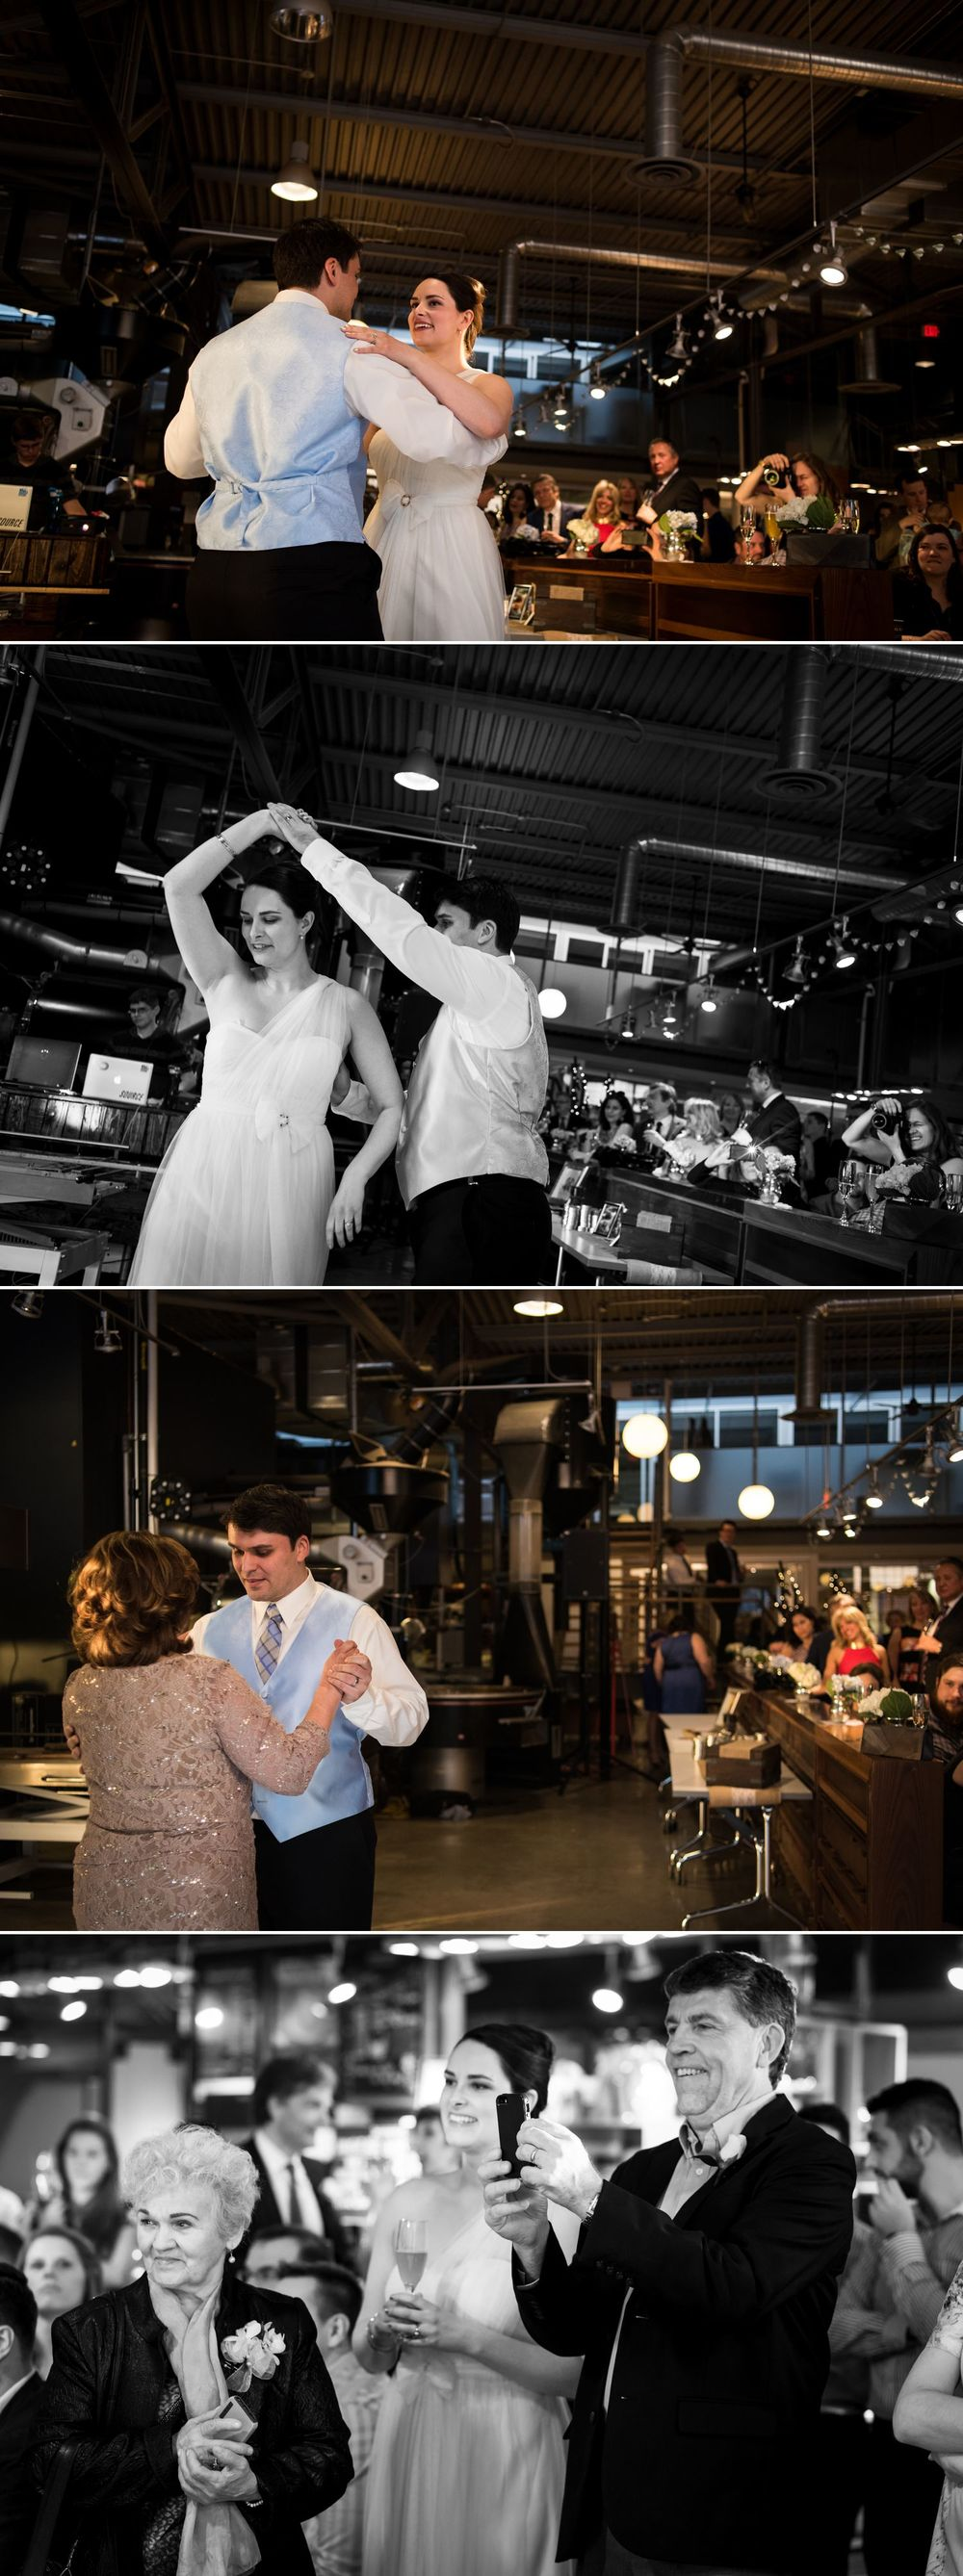 First dances with the bride, groom, and mother of the groom at their Bridgehead Roastery reception